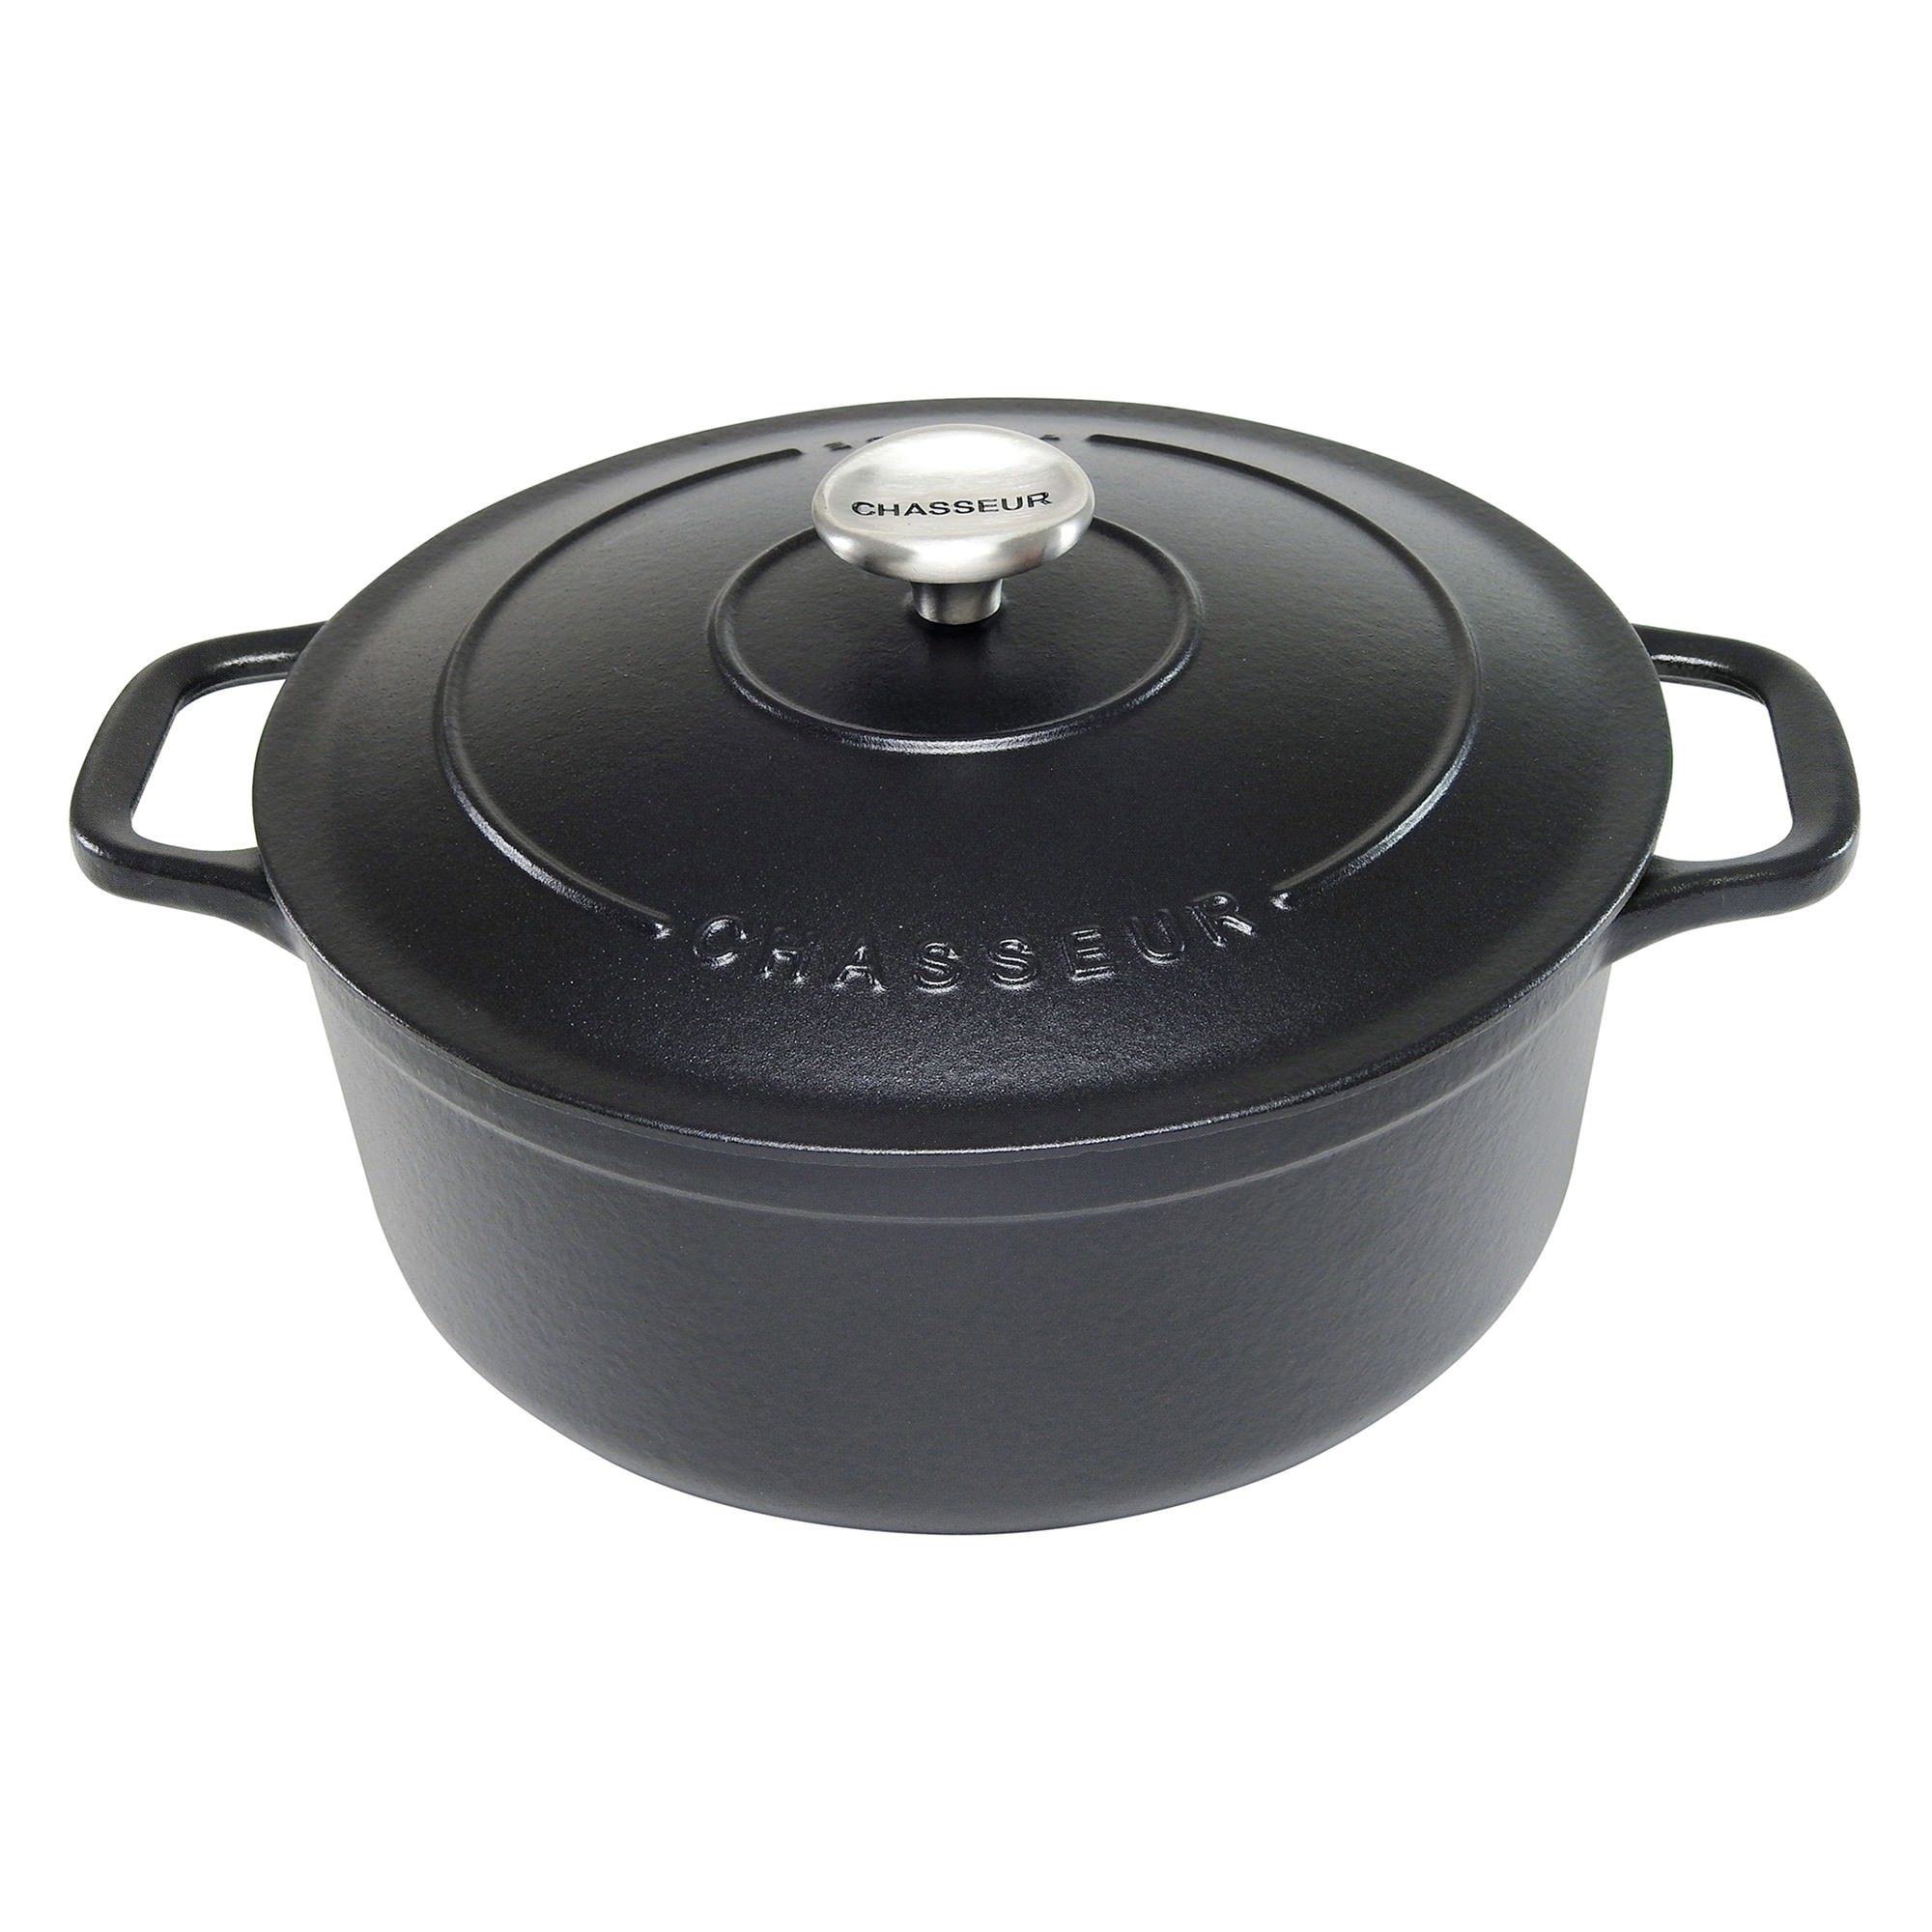 Chasseur Cast Iron Round French Oven, 26cm, Matte Black